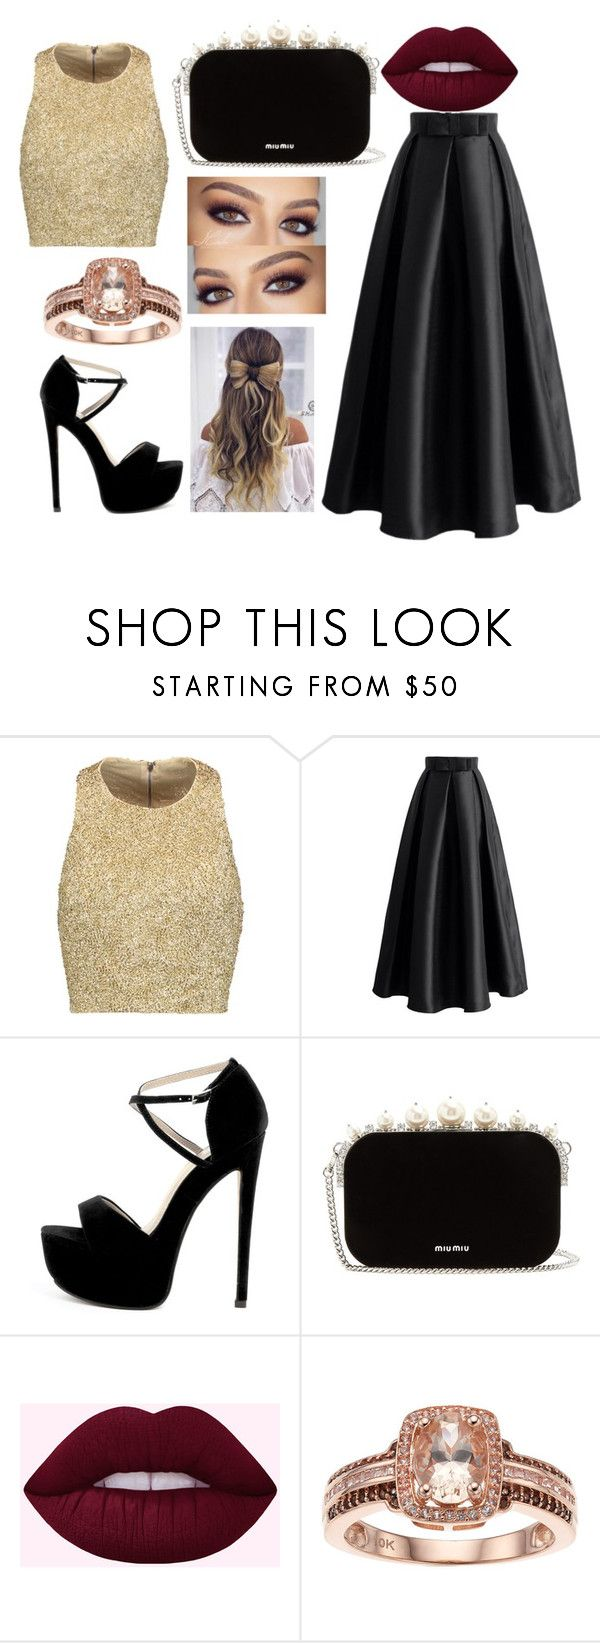 """""""Untitled #9"""" by regimoroz ❤ liked on Polyvore featuring Alice + Olivia, Chicwish and Miu Miu"""